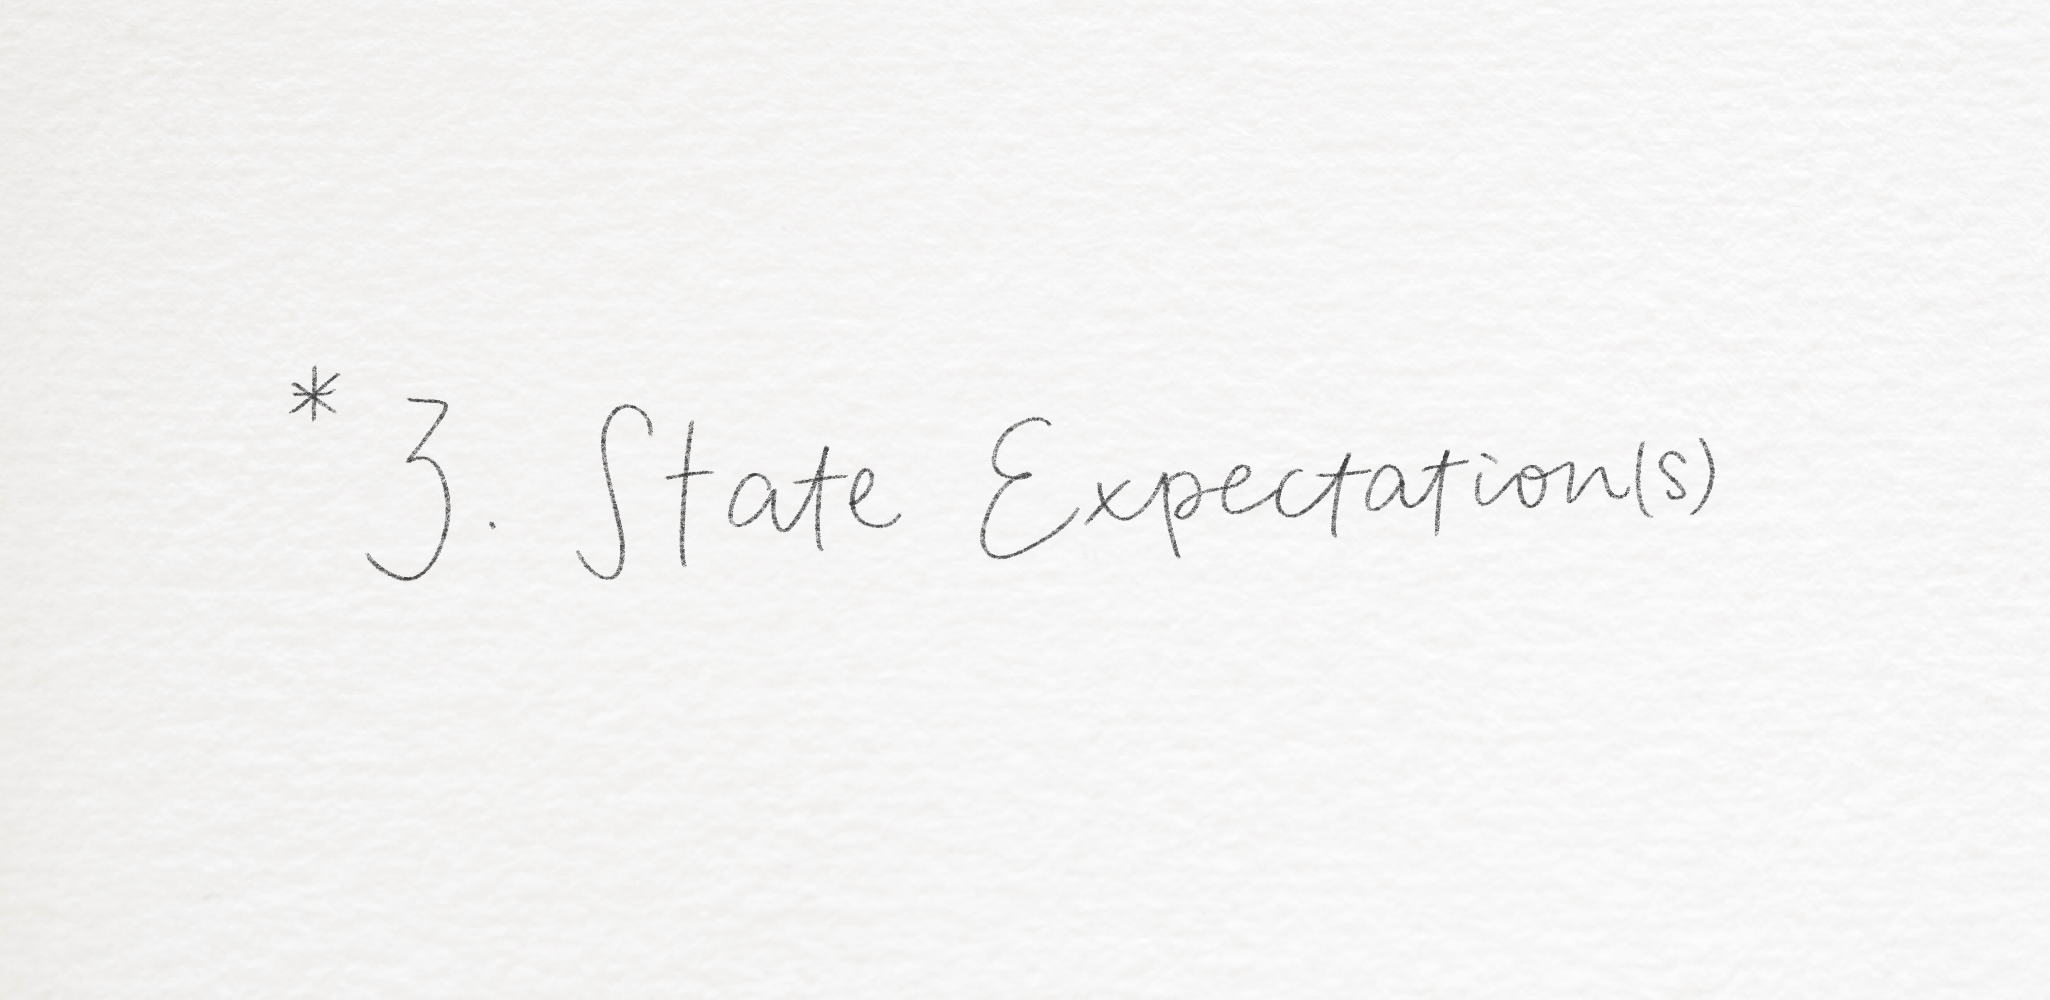 3. State Expectation(s)